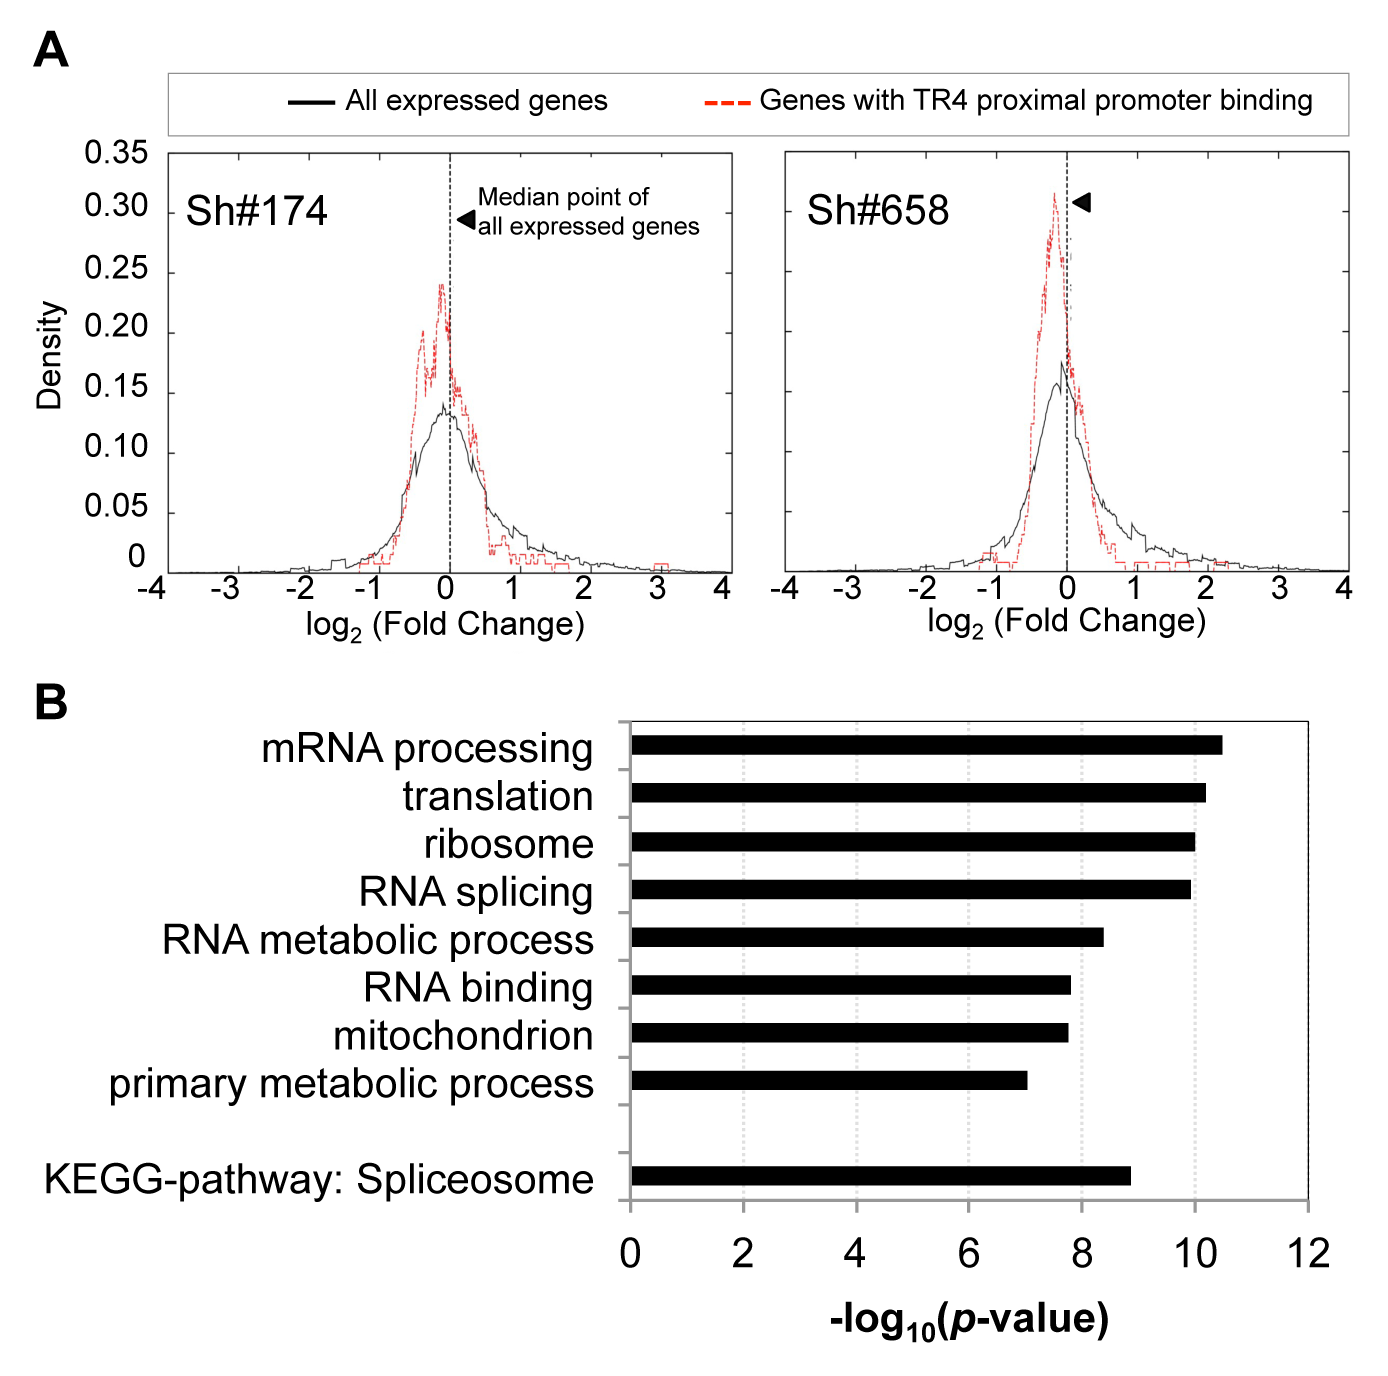 The expression of genes with TR4 bound at proximal promoter is reduced after TR4 depletion.